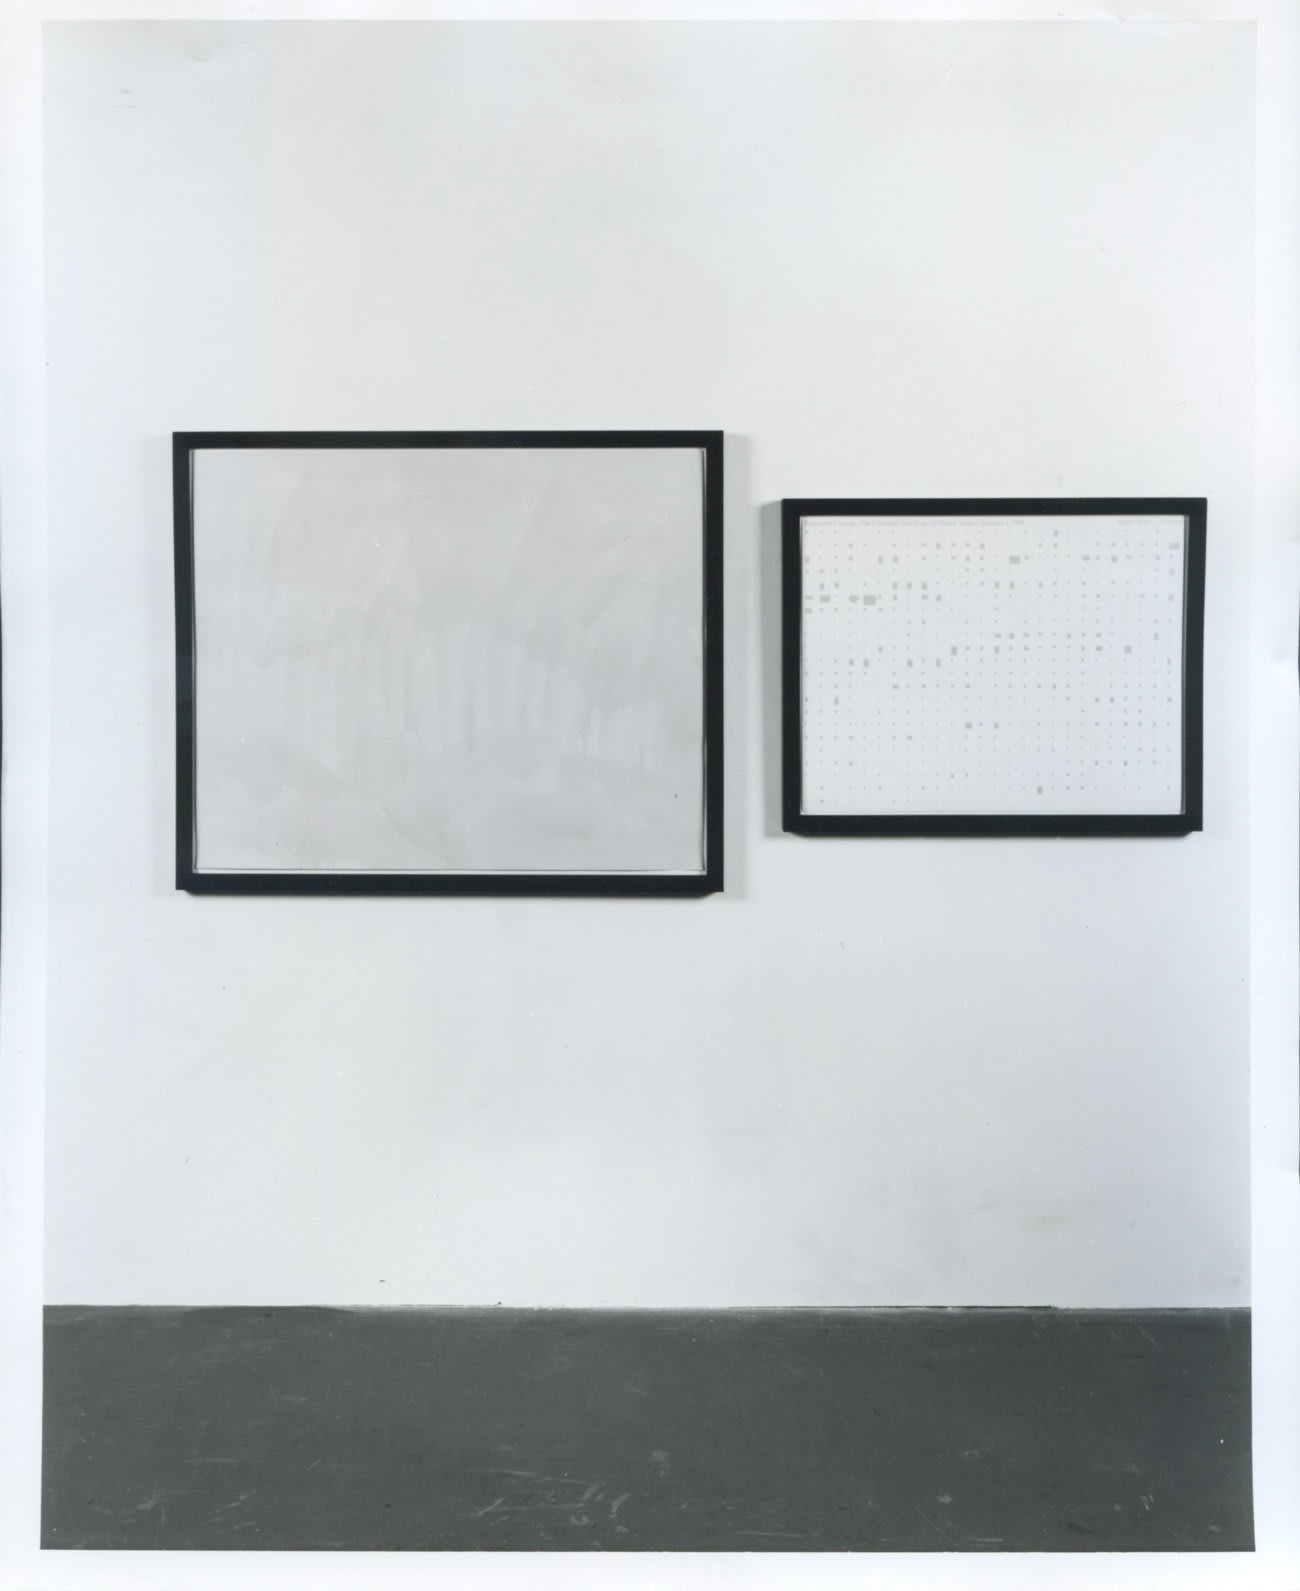 Stephen Prina: 'Exquisite Corpse: The Complete Paintings of Manet' and Recent Work, installation view, October 1989